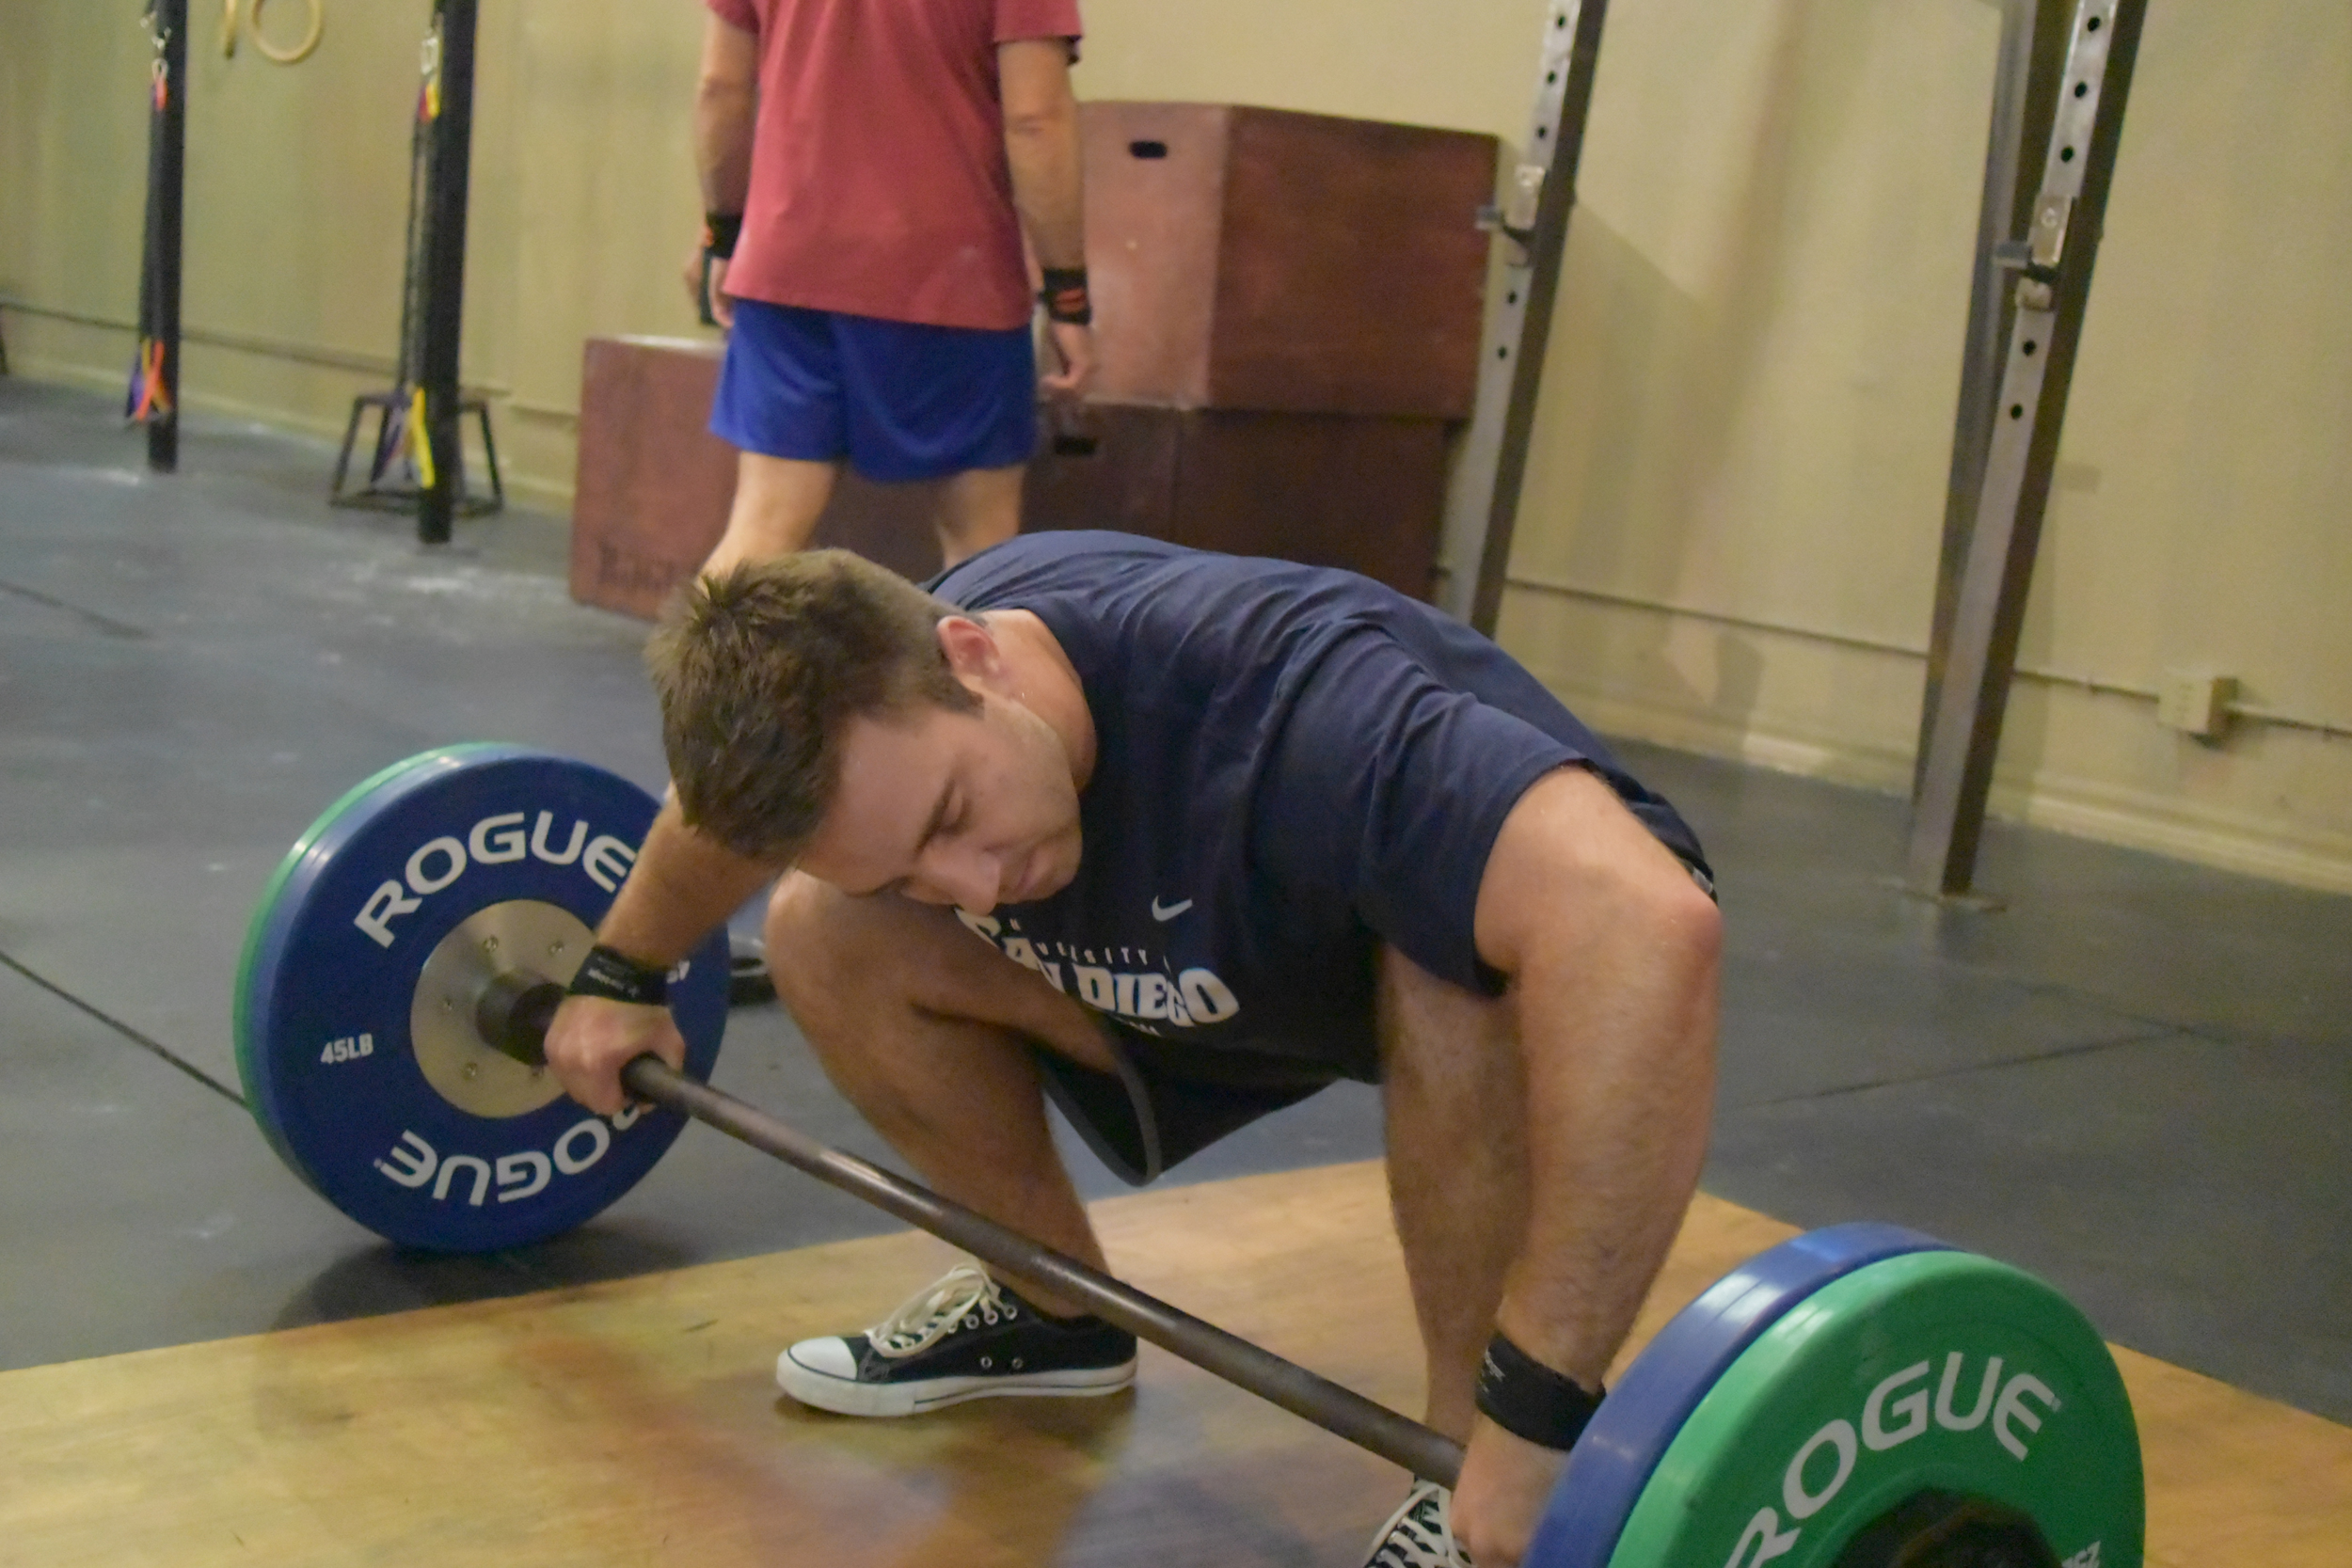 Kellan readies himself for a big snatch with a well rehearsed set up routine. Visualizing the whole movement he successfully hang snatches #205 with ease today.